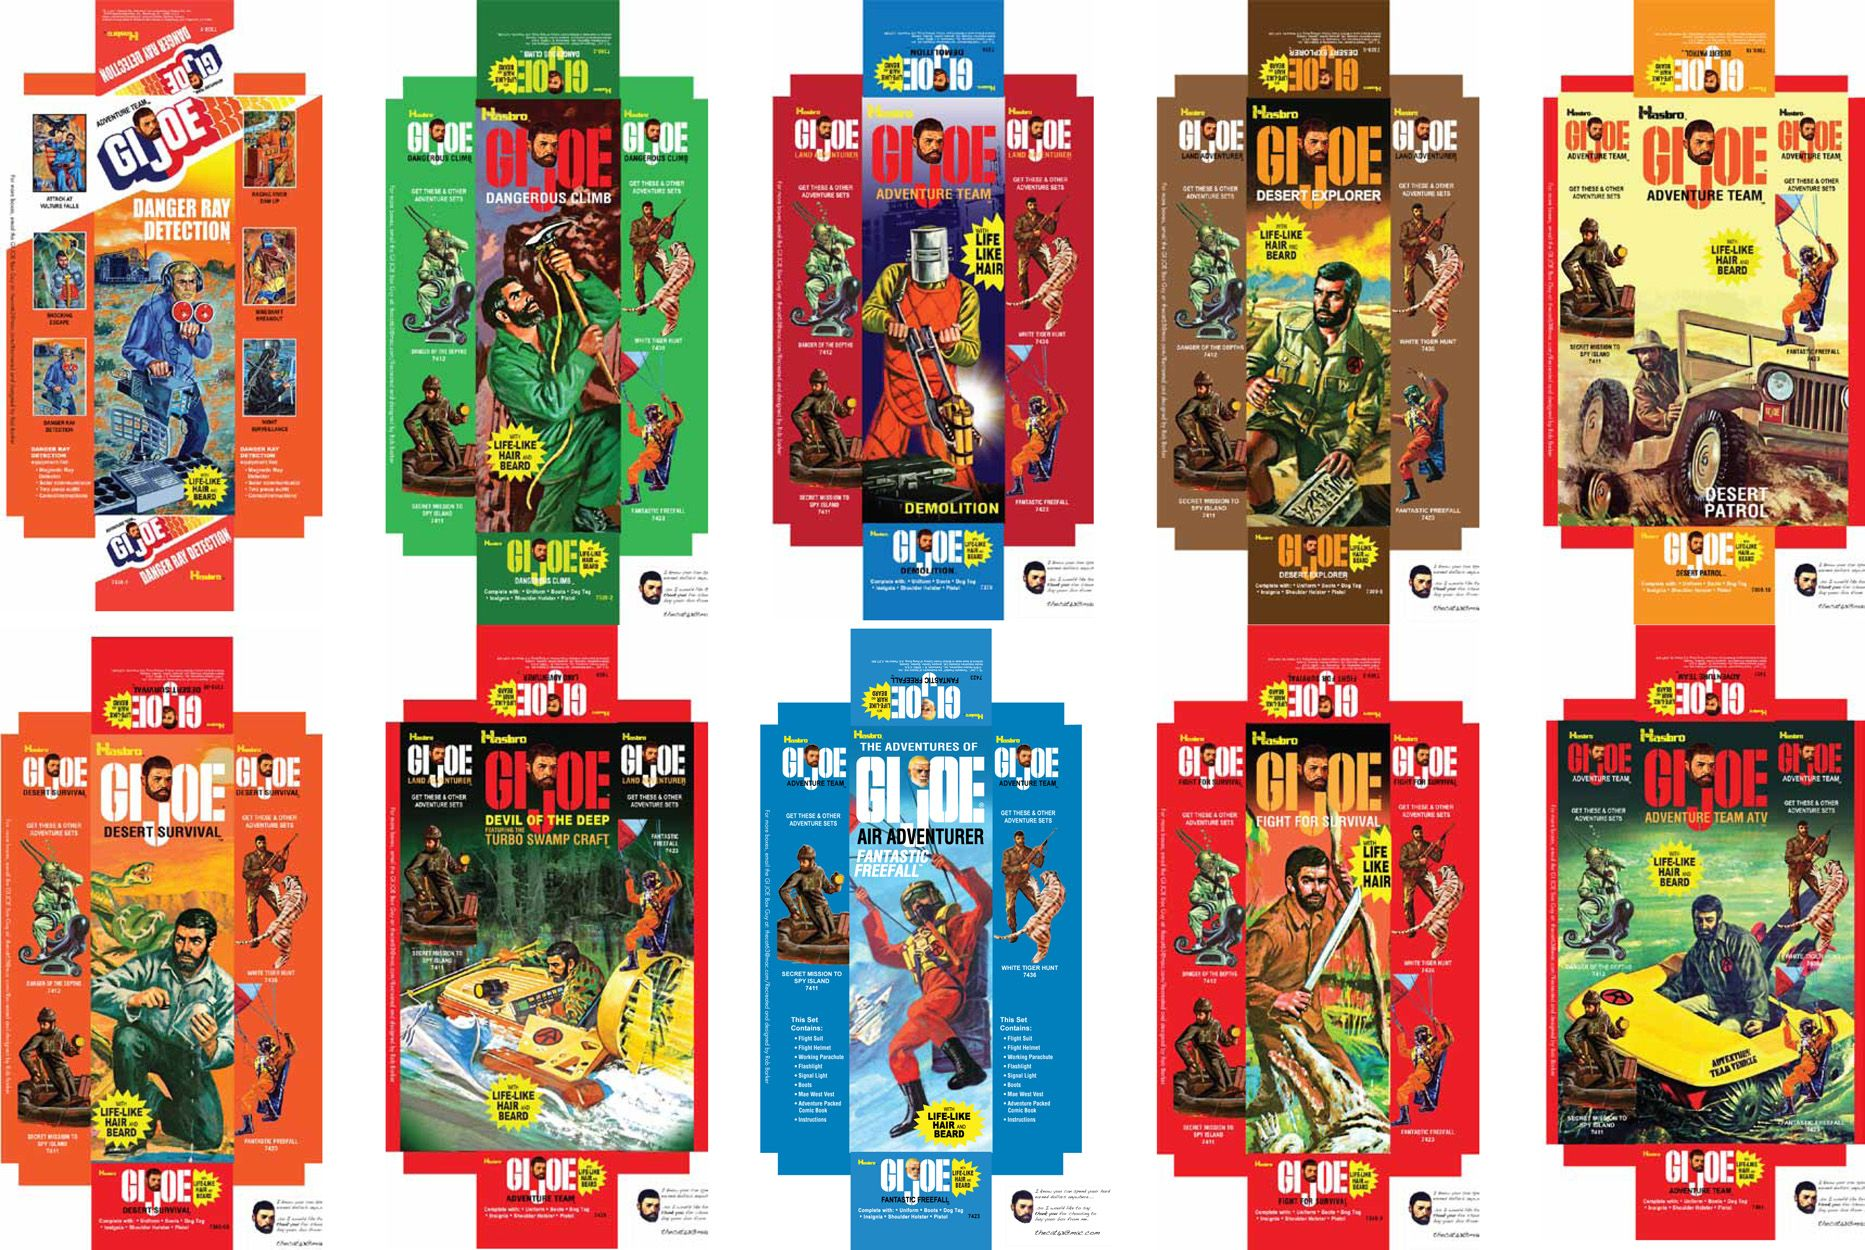 GI JOE Adventure Team vintage style coffin boxes -/>MANY TO CHOOSE FROM!